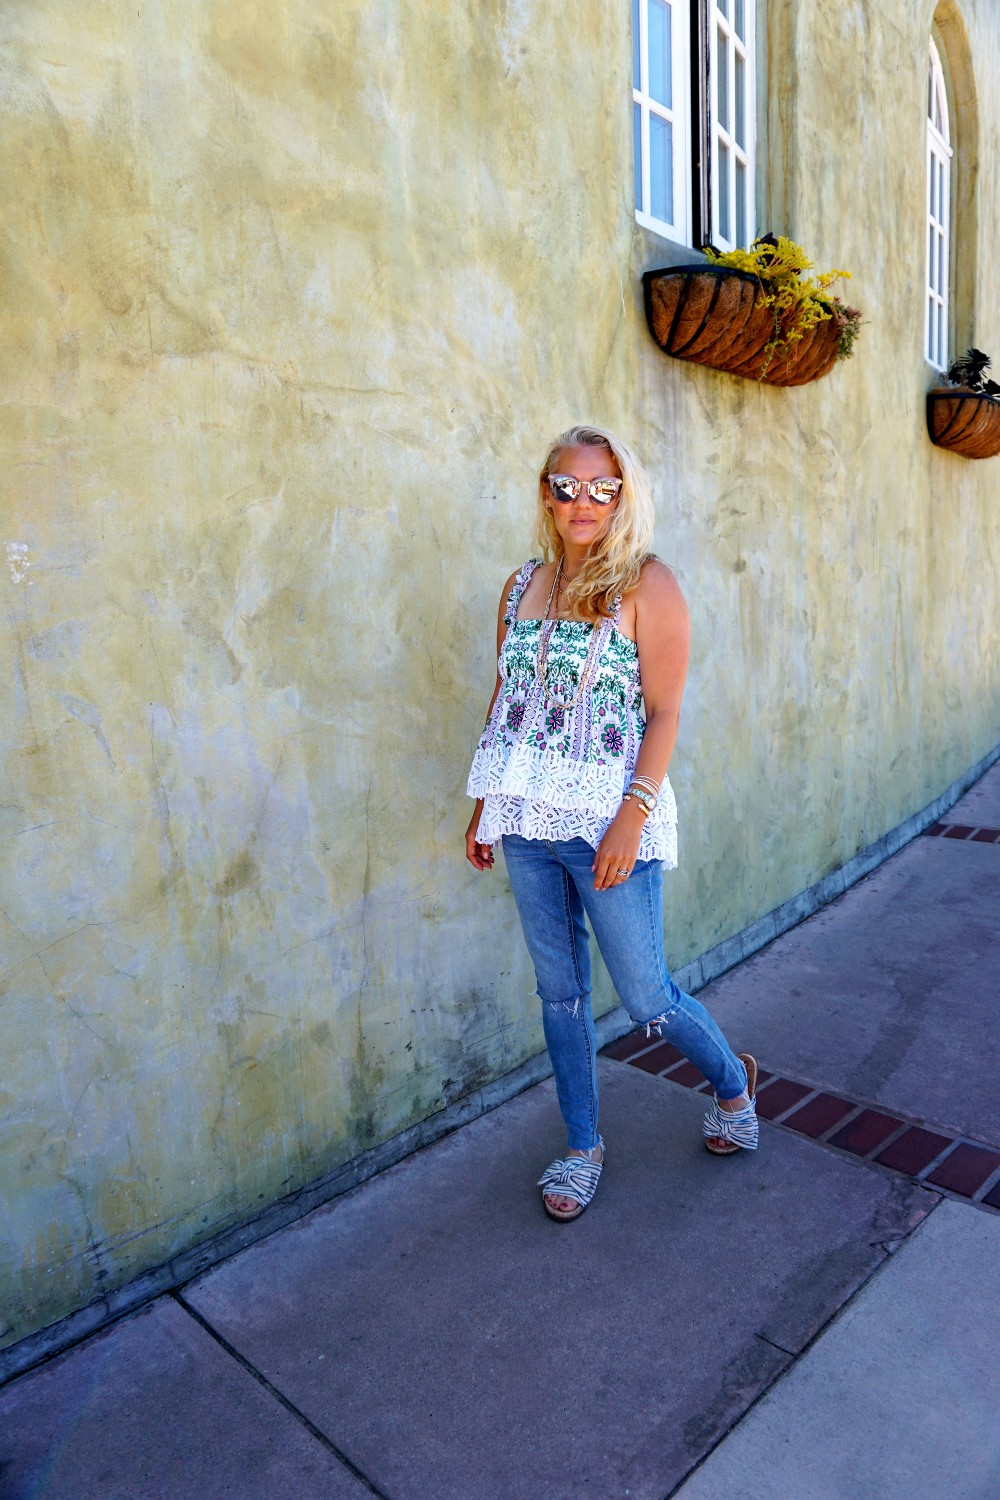 Tiered Babydoll Top-Lace Trim Silk Georgette Top by Tory Burch-Spring Outfit Inspiration-Bay Area Fashion Blogger-Weekend Style-Have Need Want 6